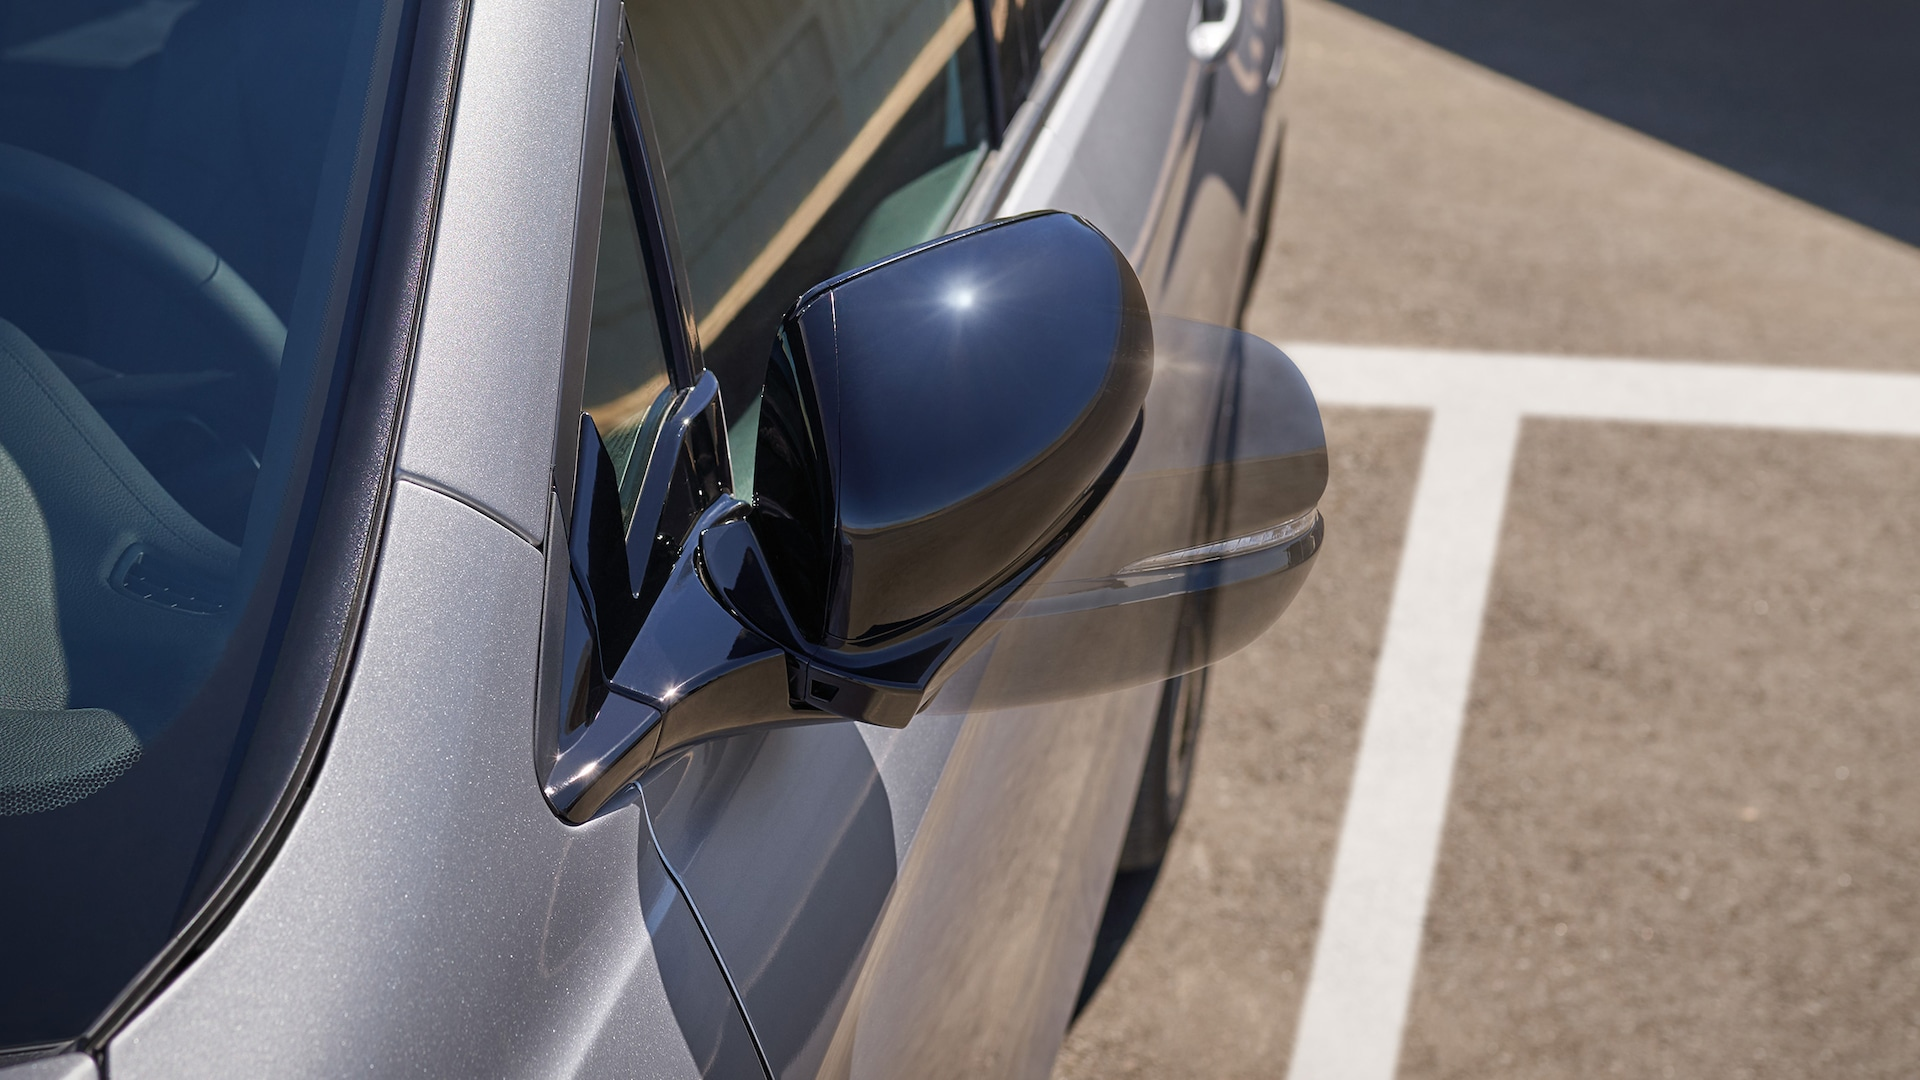 2021 Honda Passport Elite in Lunar Silver Metallic demonstrating movement of the automatic-dimming, power- folding side mirror.